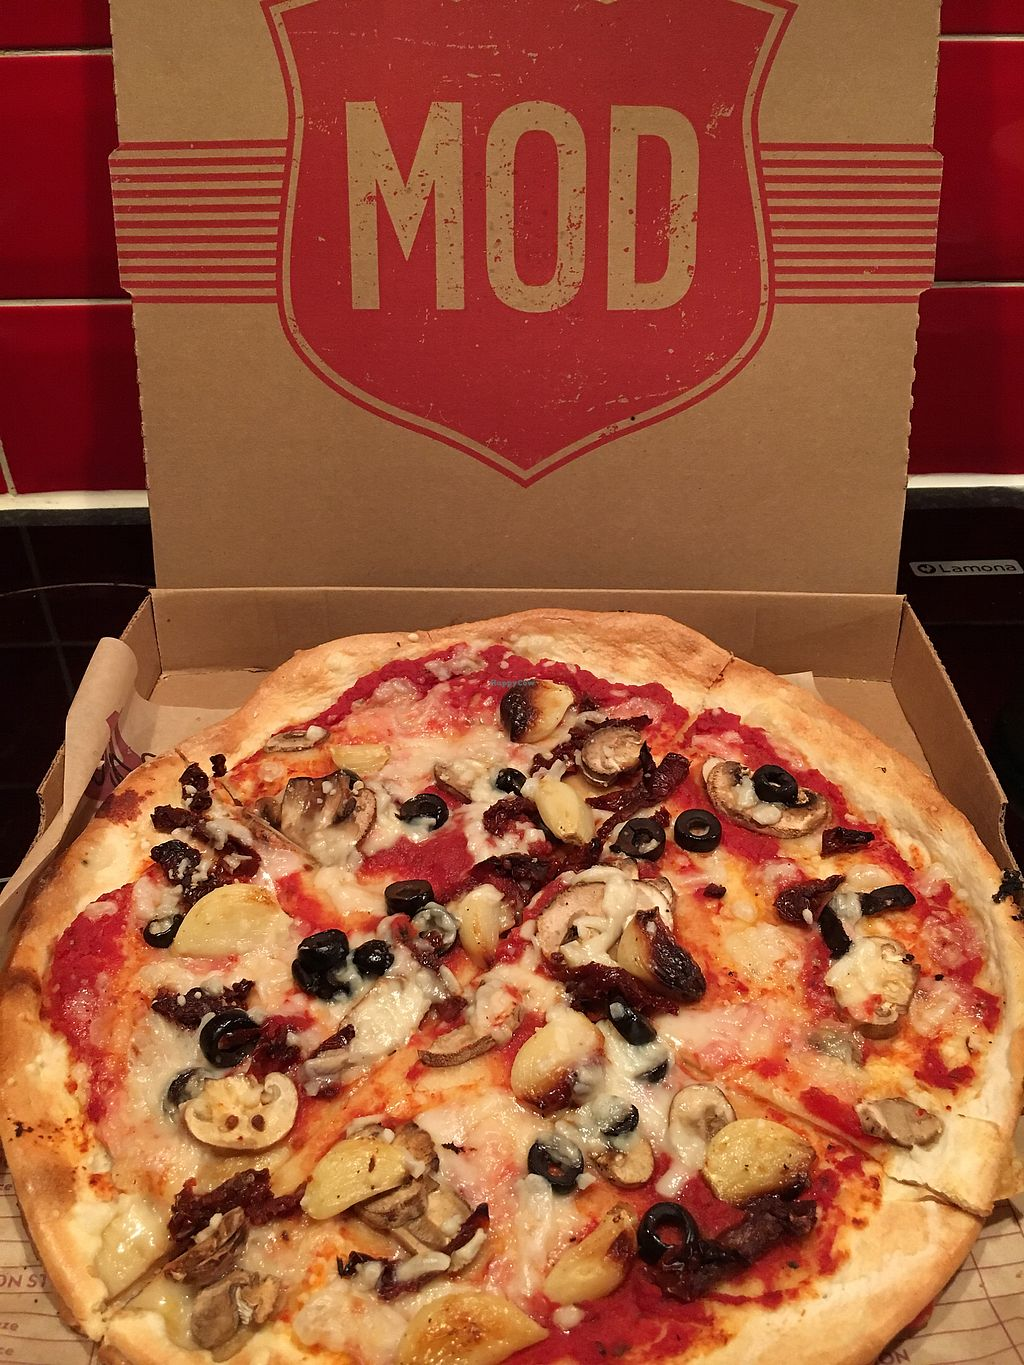 """Photo of Mod Pizza  by <a href=""""/members/profile/hack_man"""">hack_man</a> <br/>Pizza with mushrooms, sun dried toms, garlic & olives  <br/> September 1, 2017  - <a href='/contact/abuse/image/87204/299788'>Report</a>"""